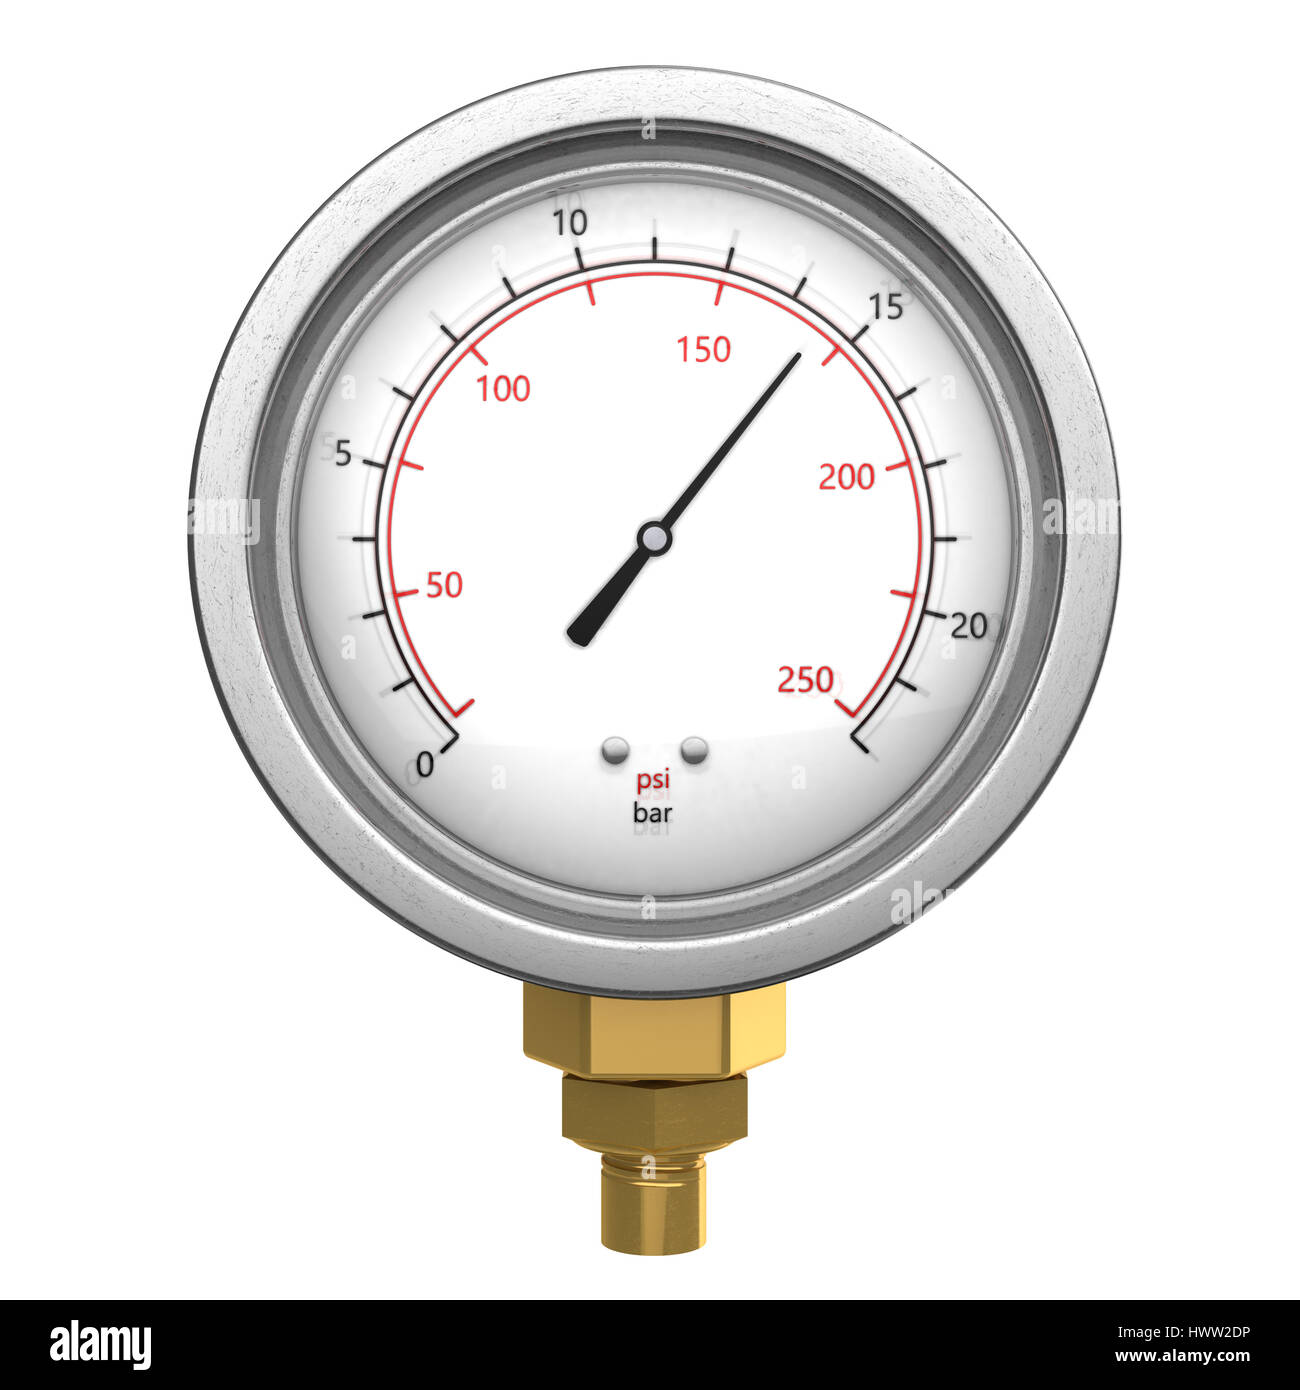 3d illustration of manometer isolated over white background - Stock Image